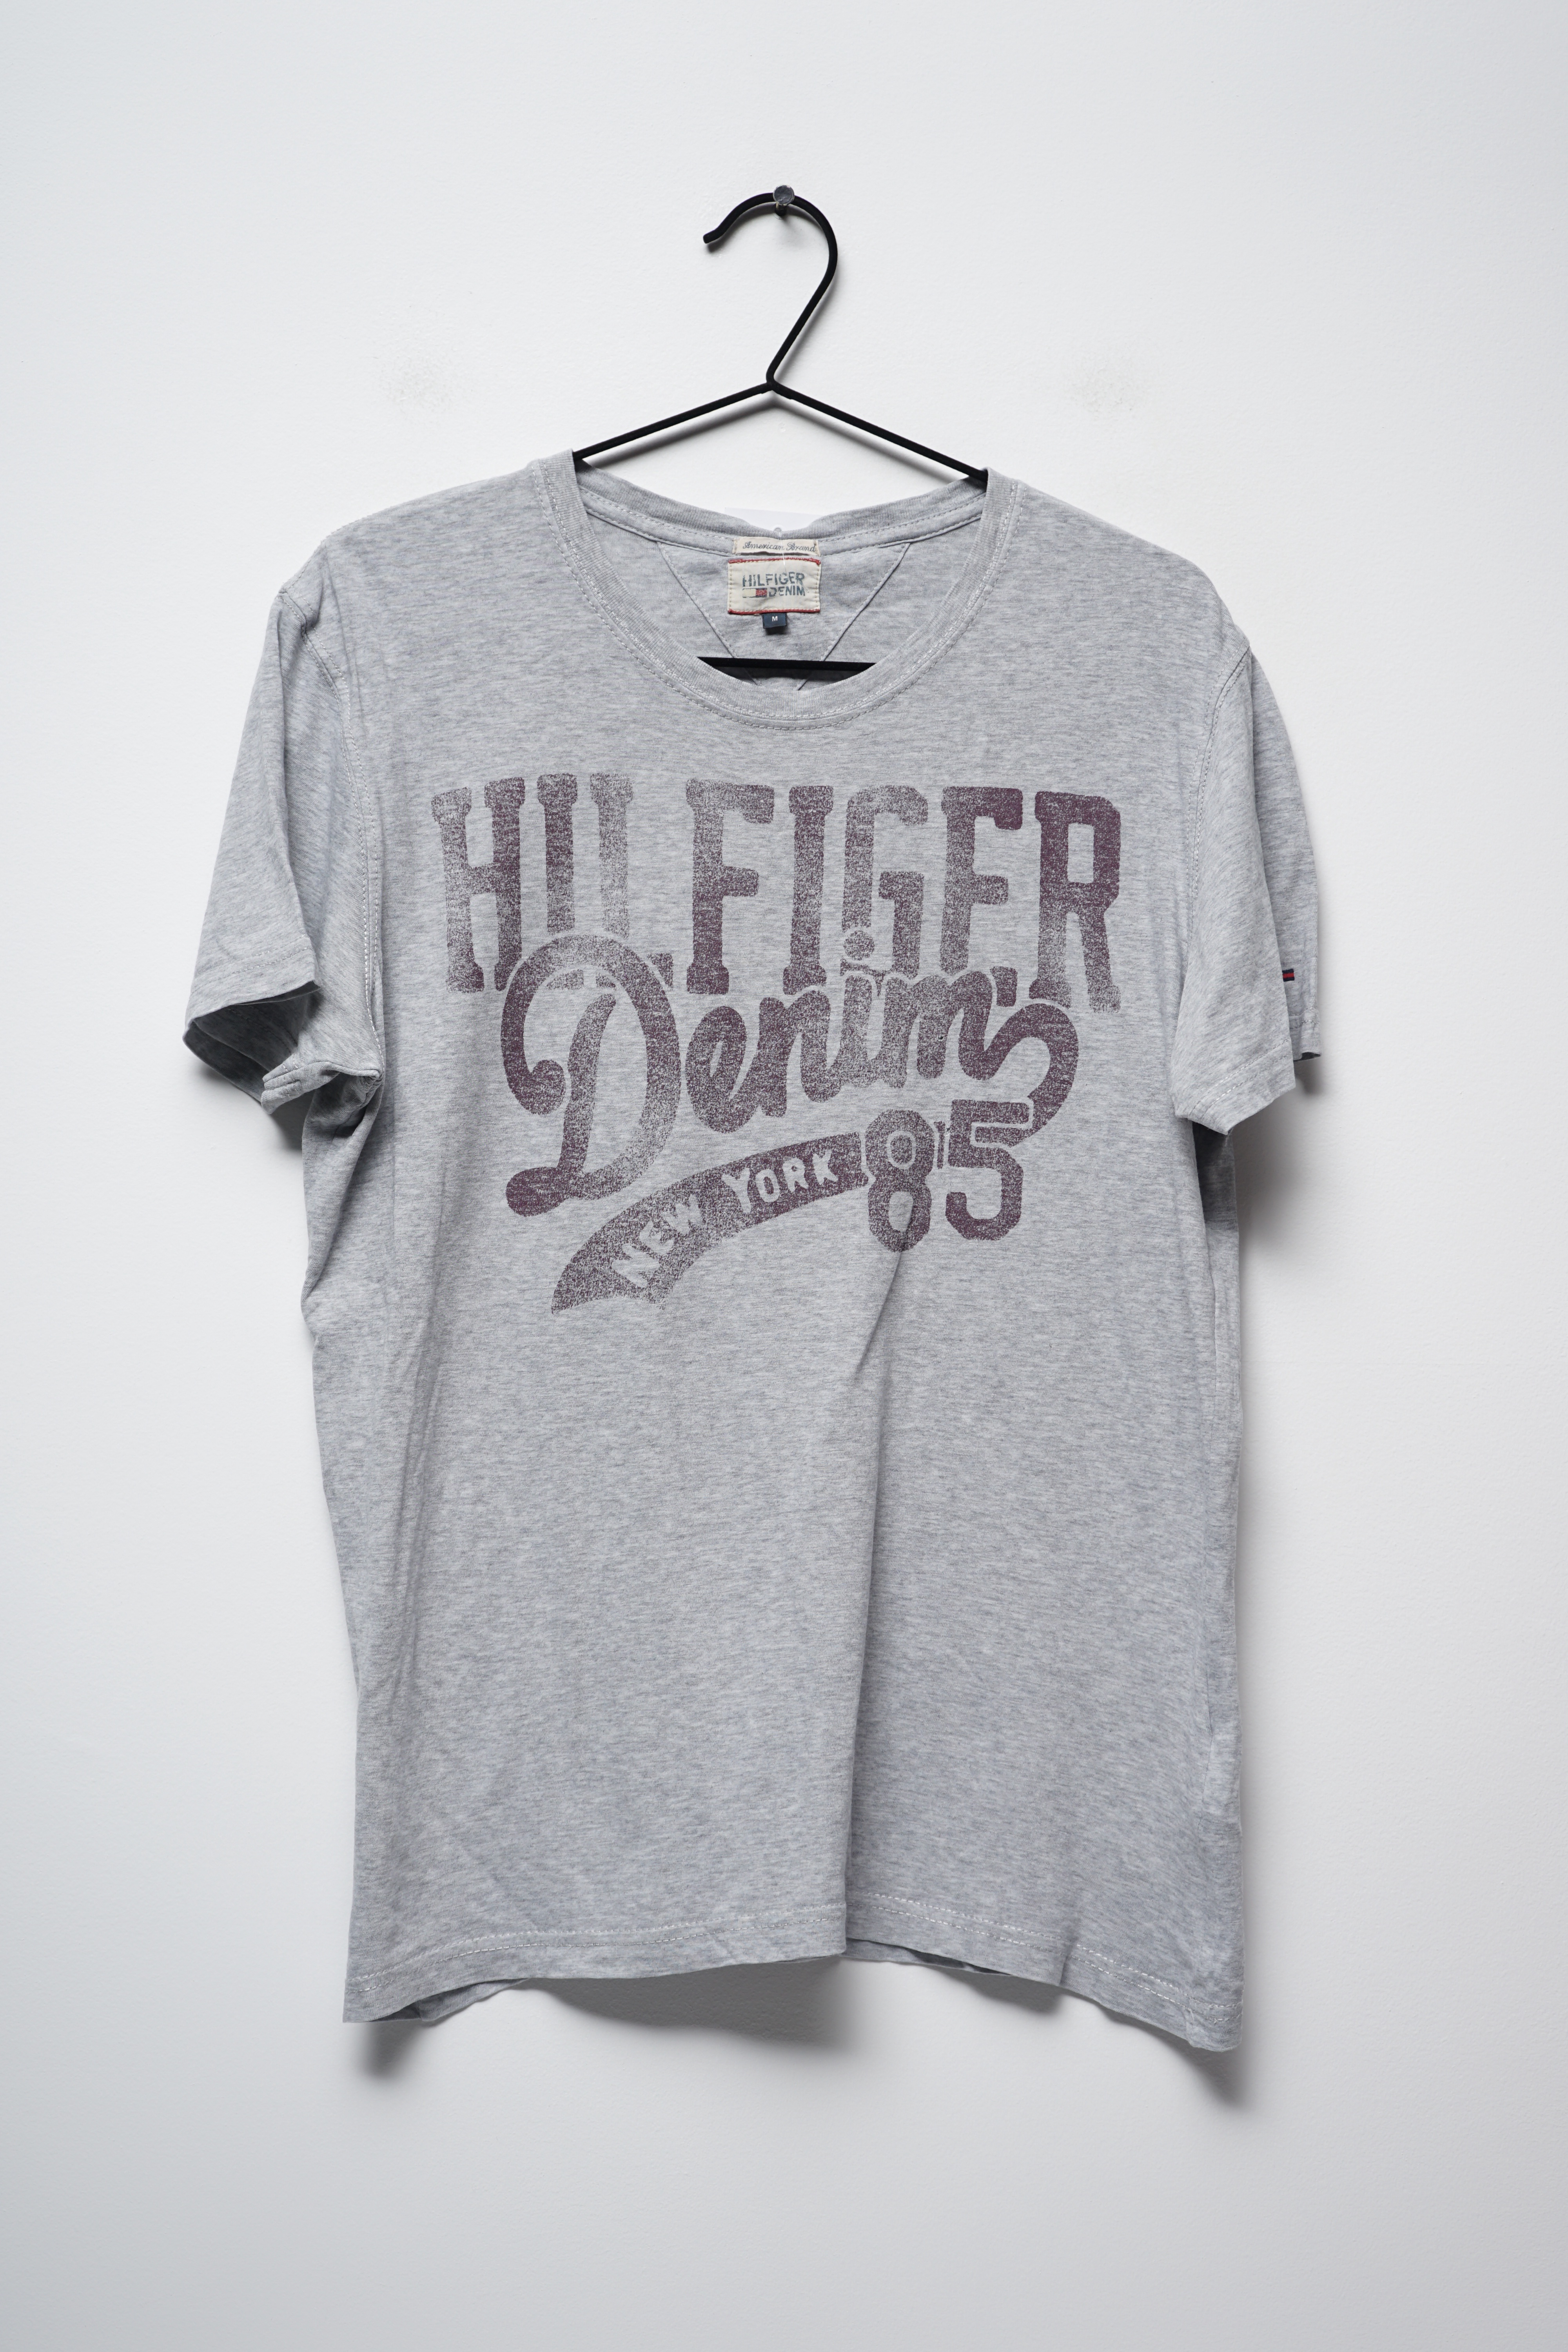 6 HERREN T Shirts Gr.M, Hollister, Abercrombie & Fitch, Pepe